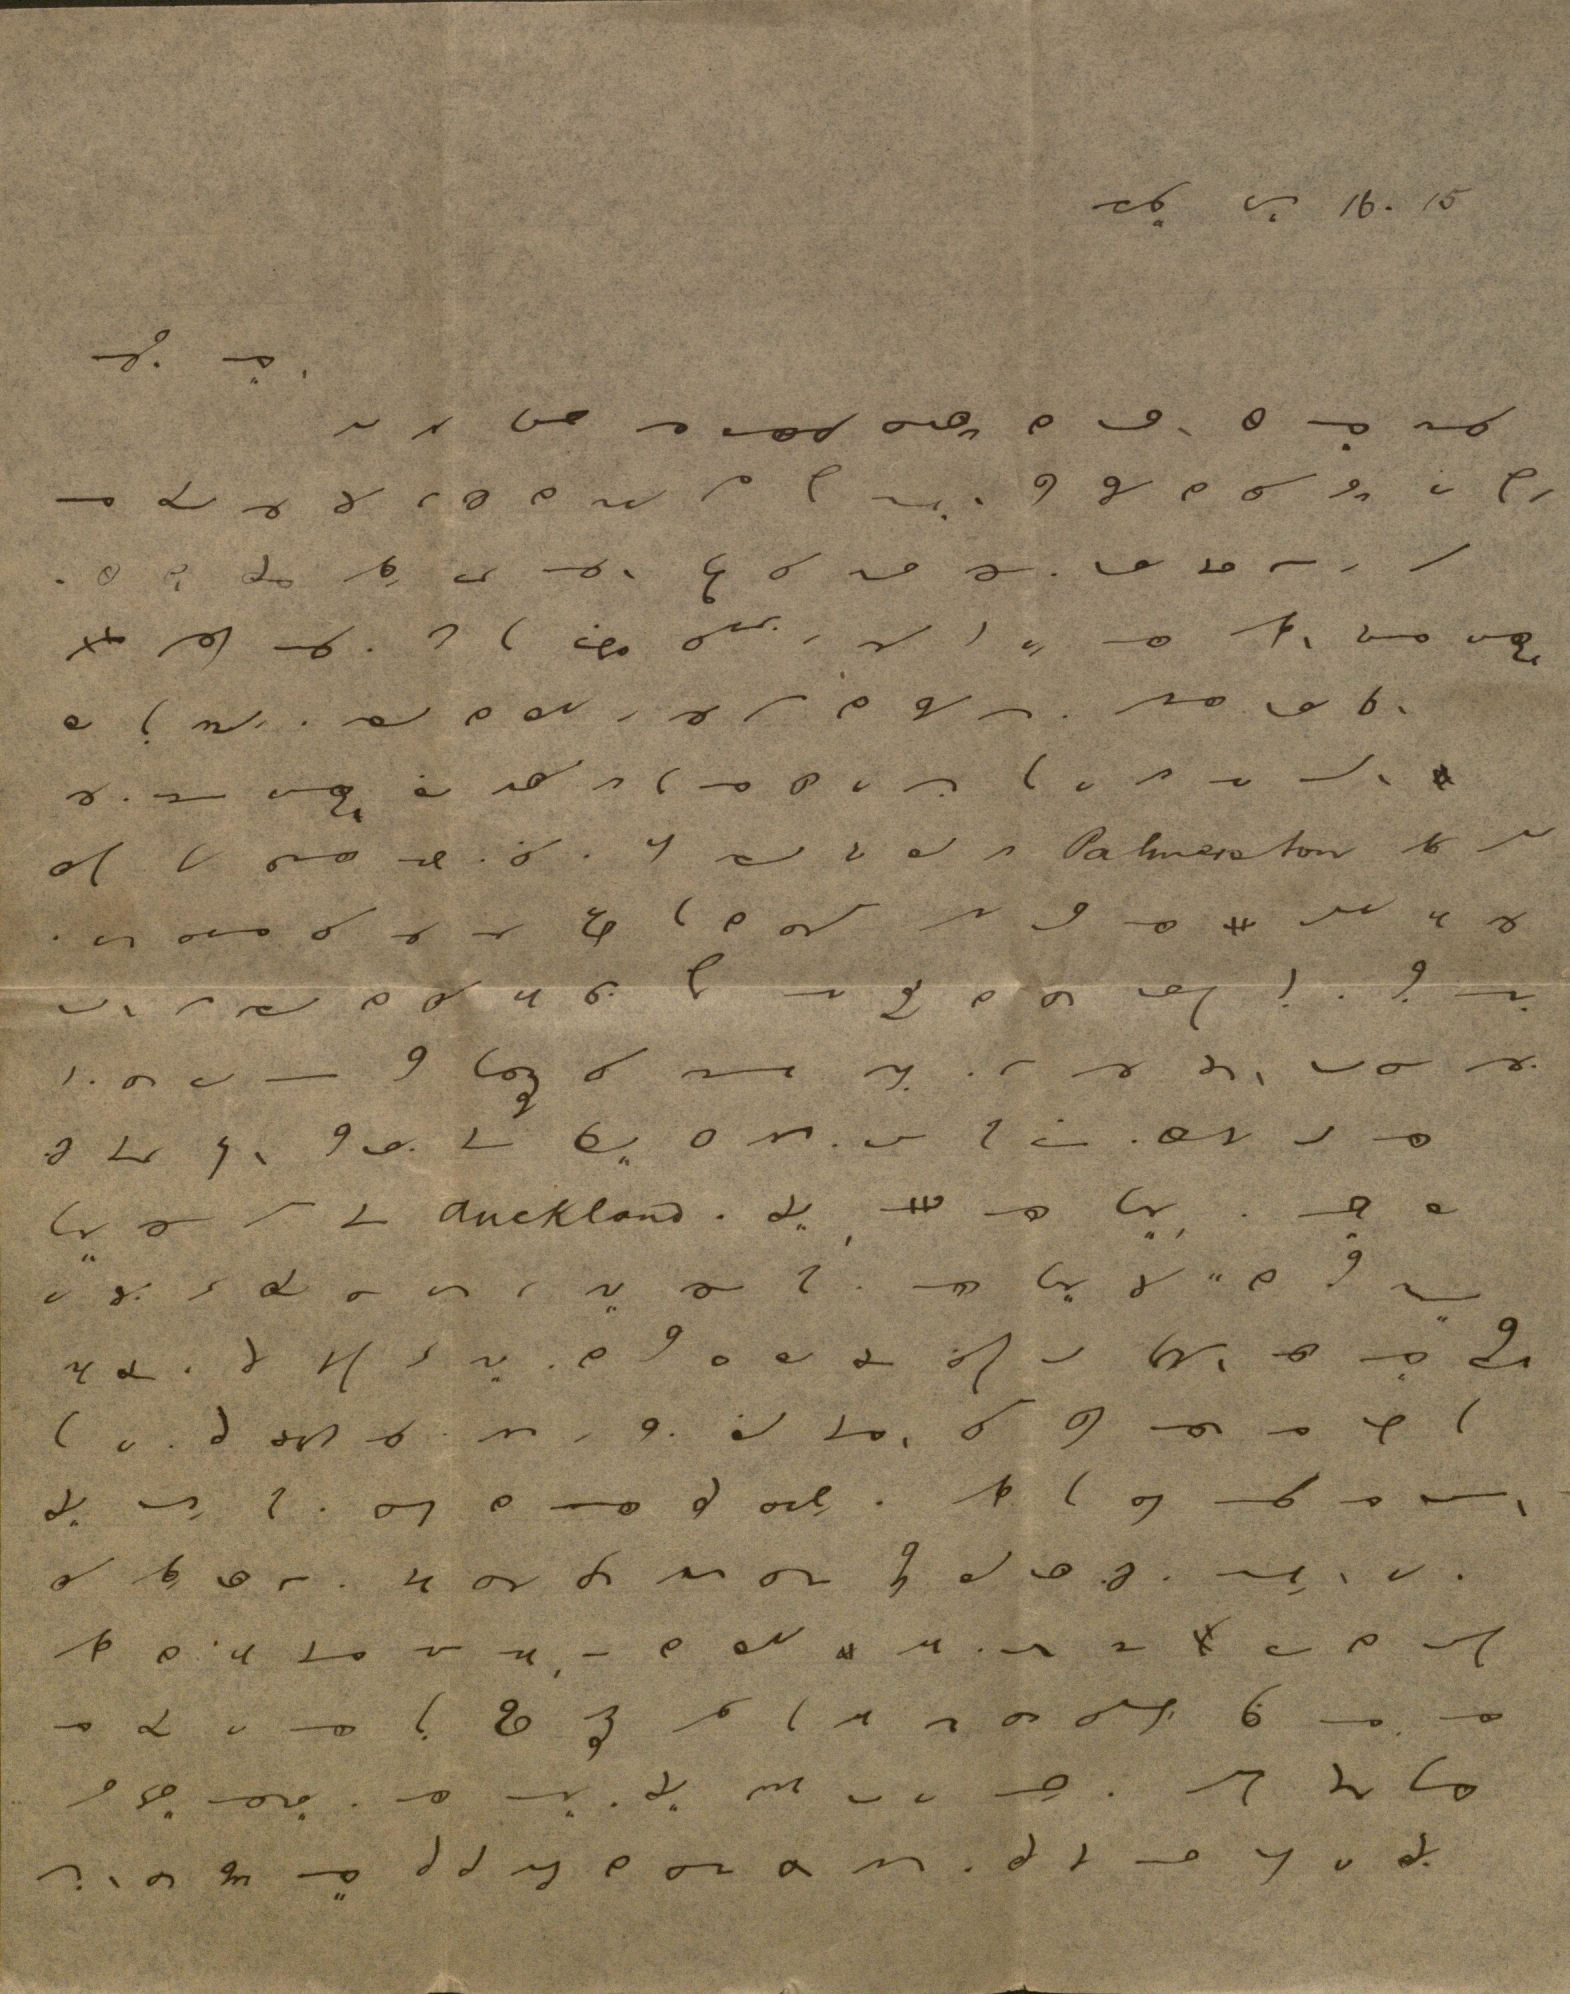 Image of the first page of a letter from Henderson to Gillette in shorthand